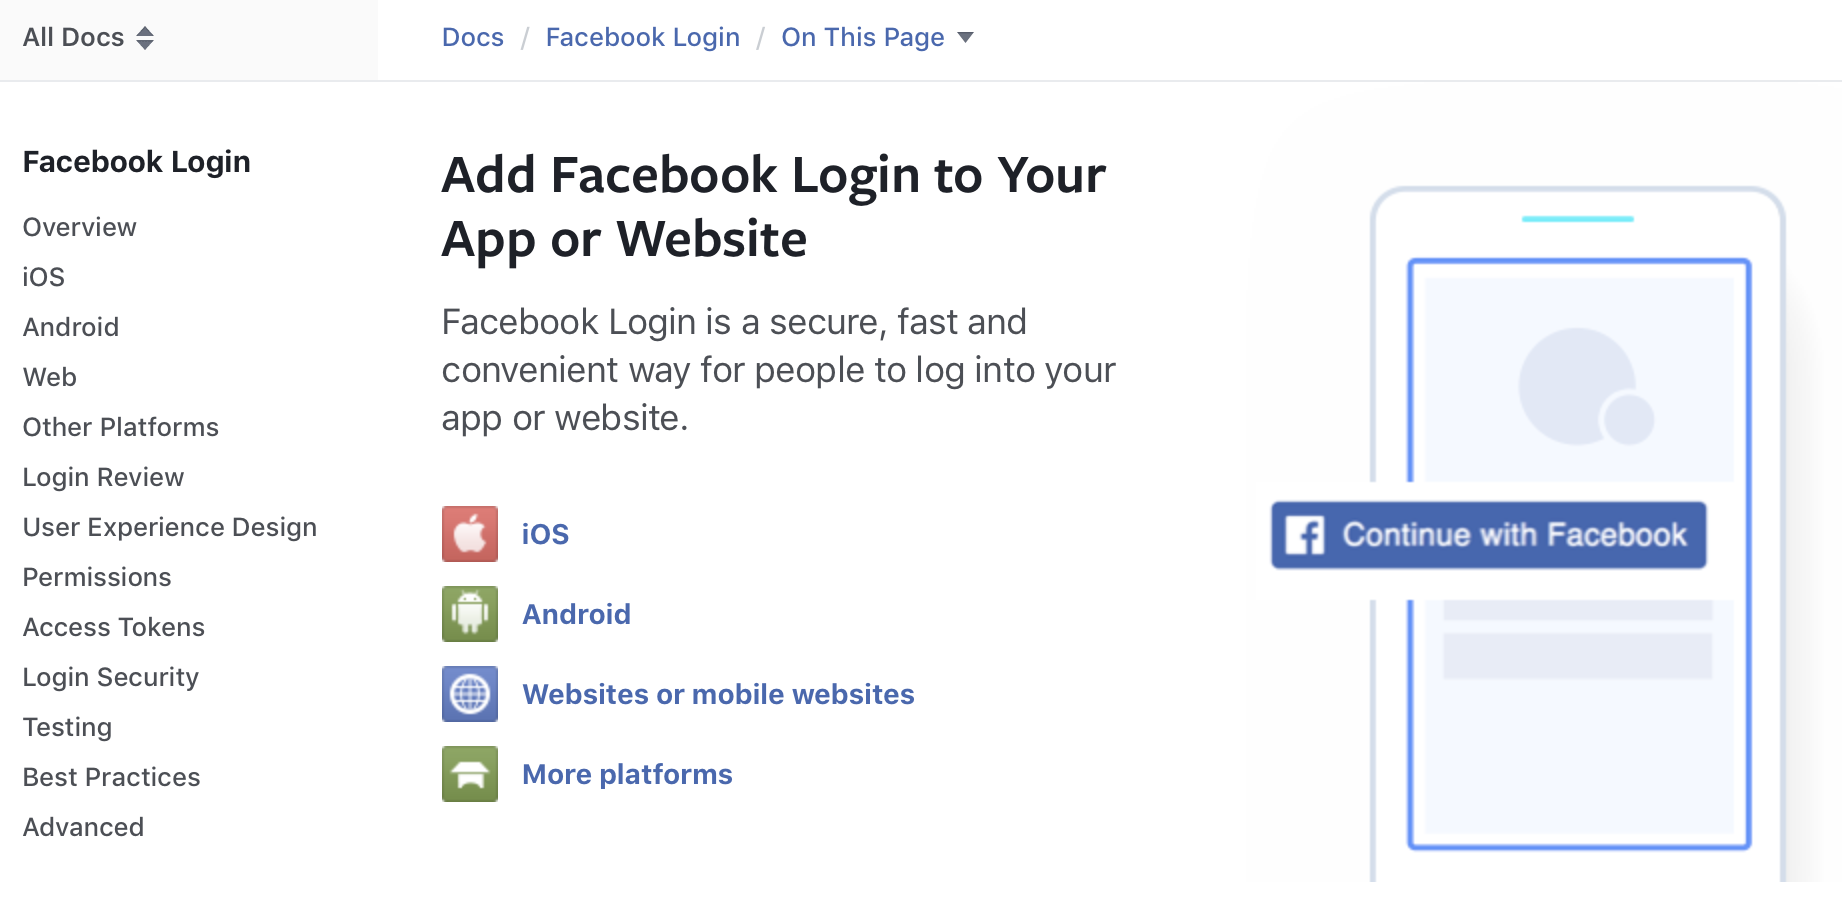 Facebook Login documentation